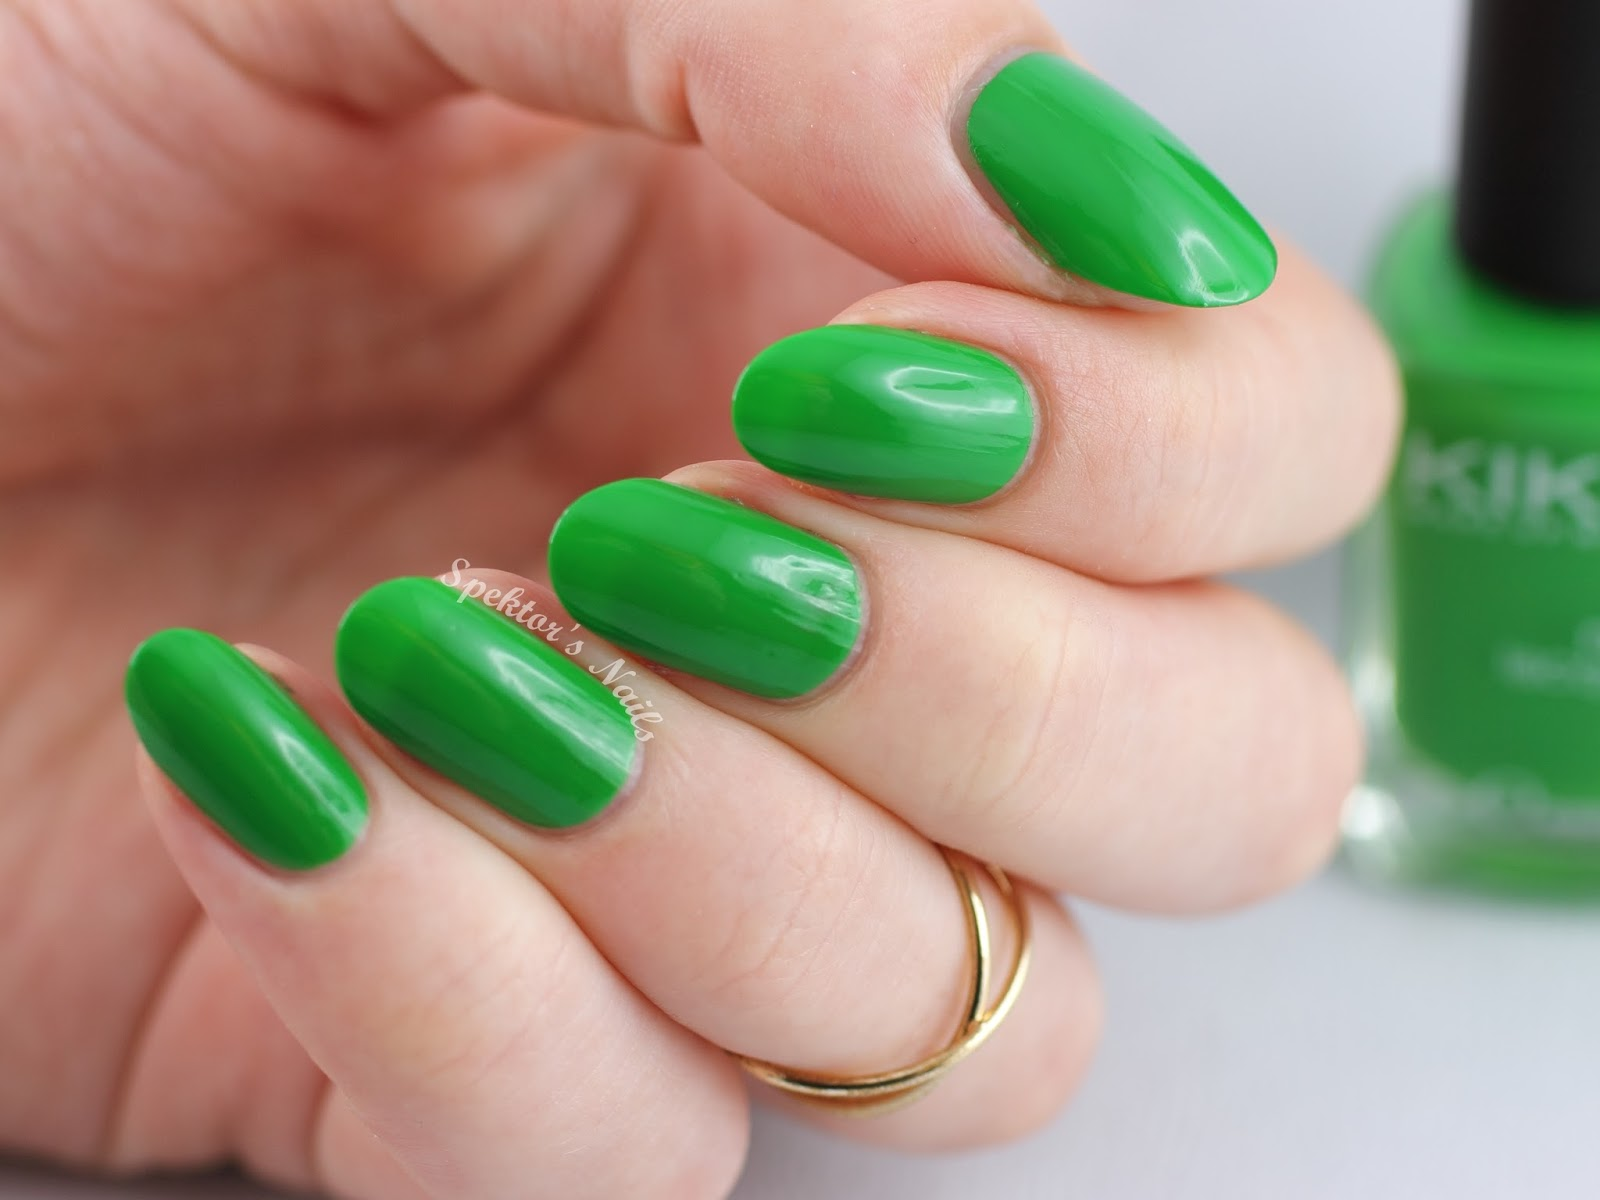 KIKO 391 Grass Green